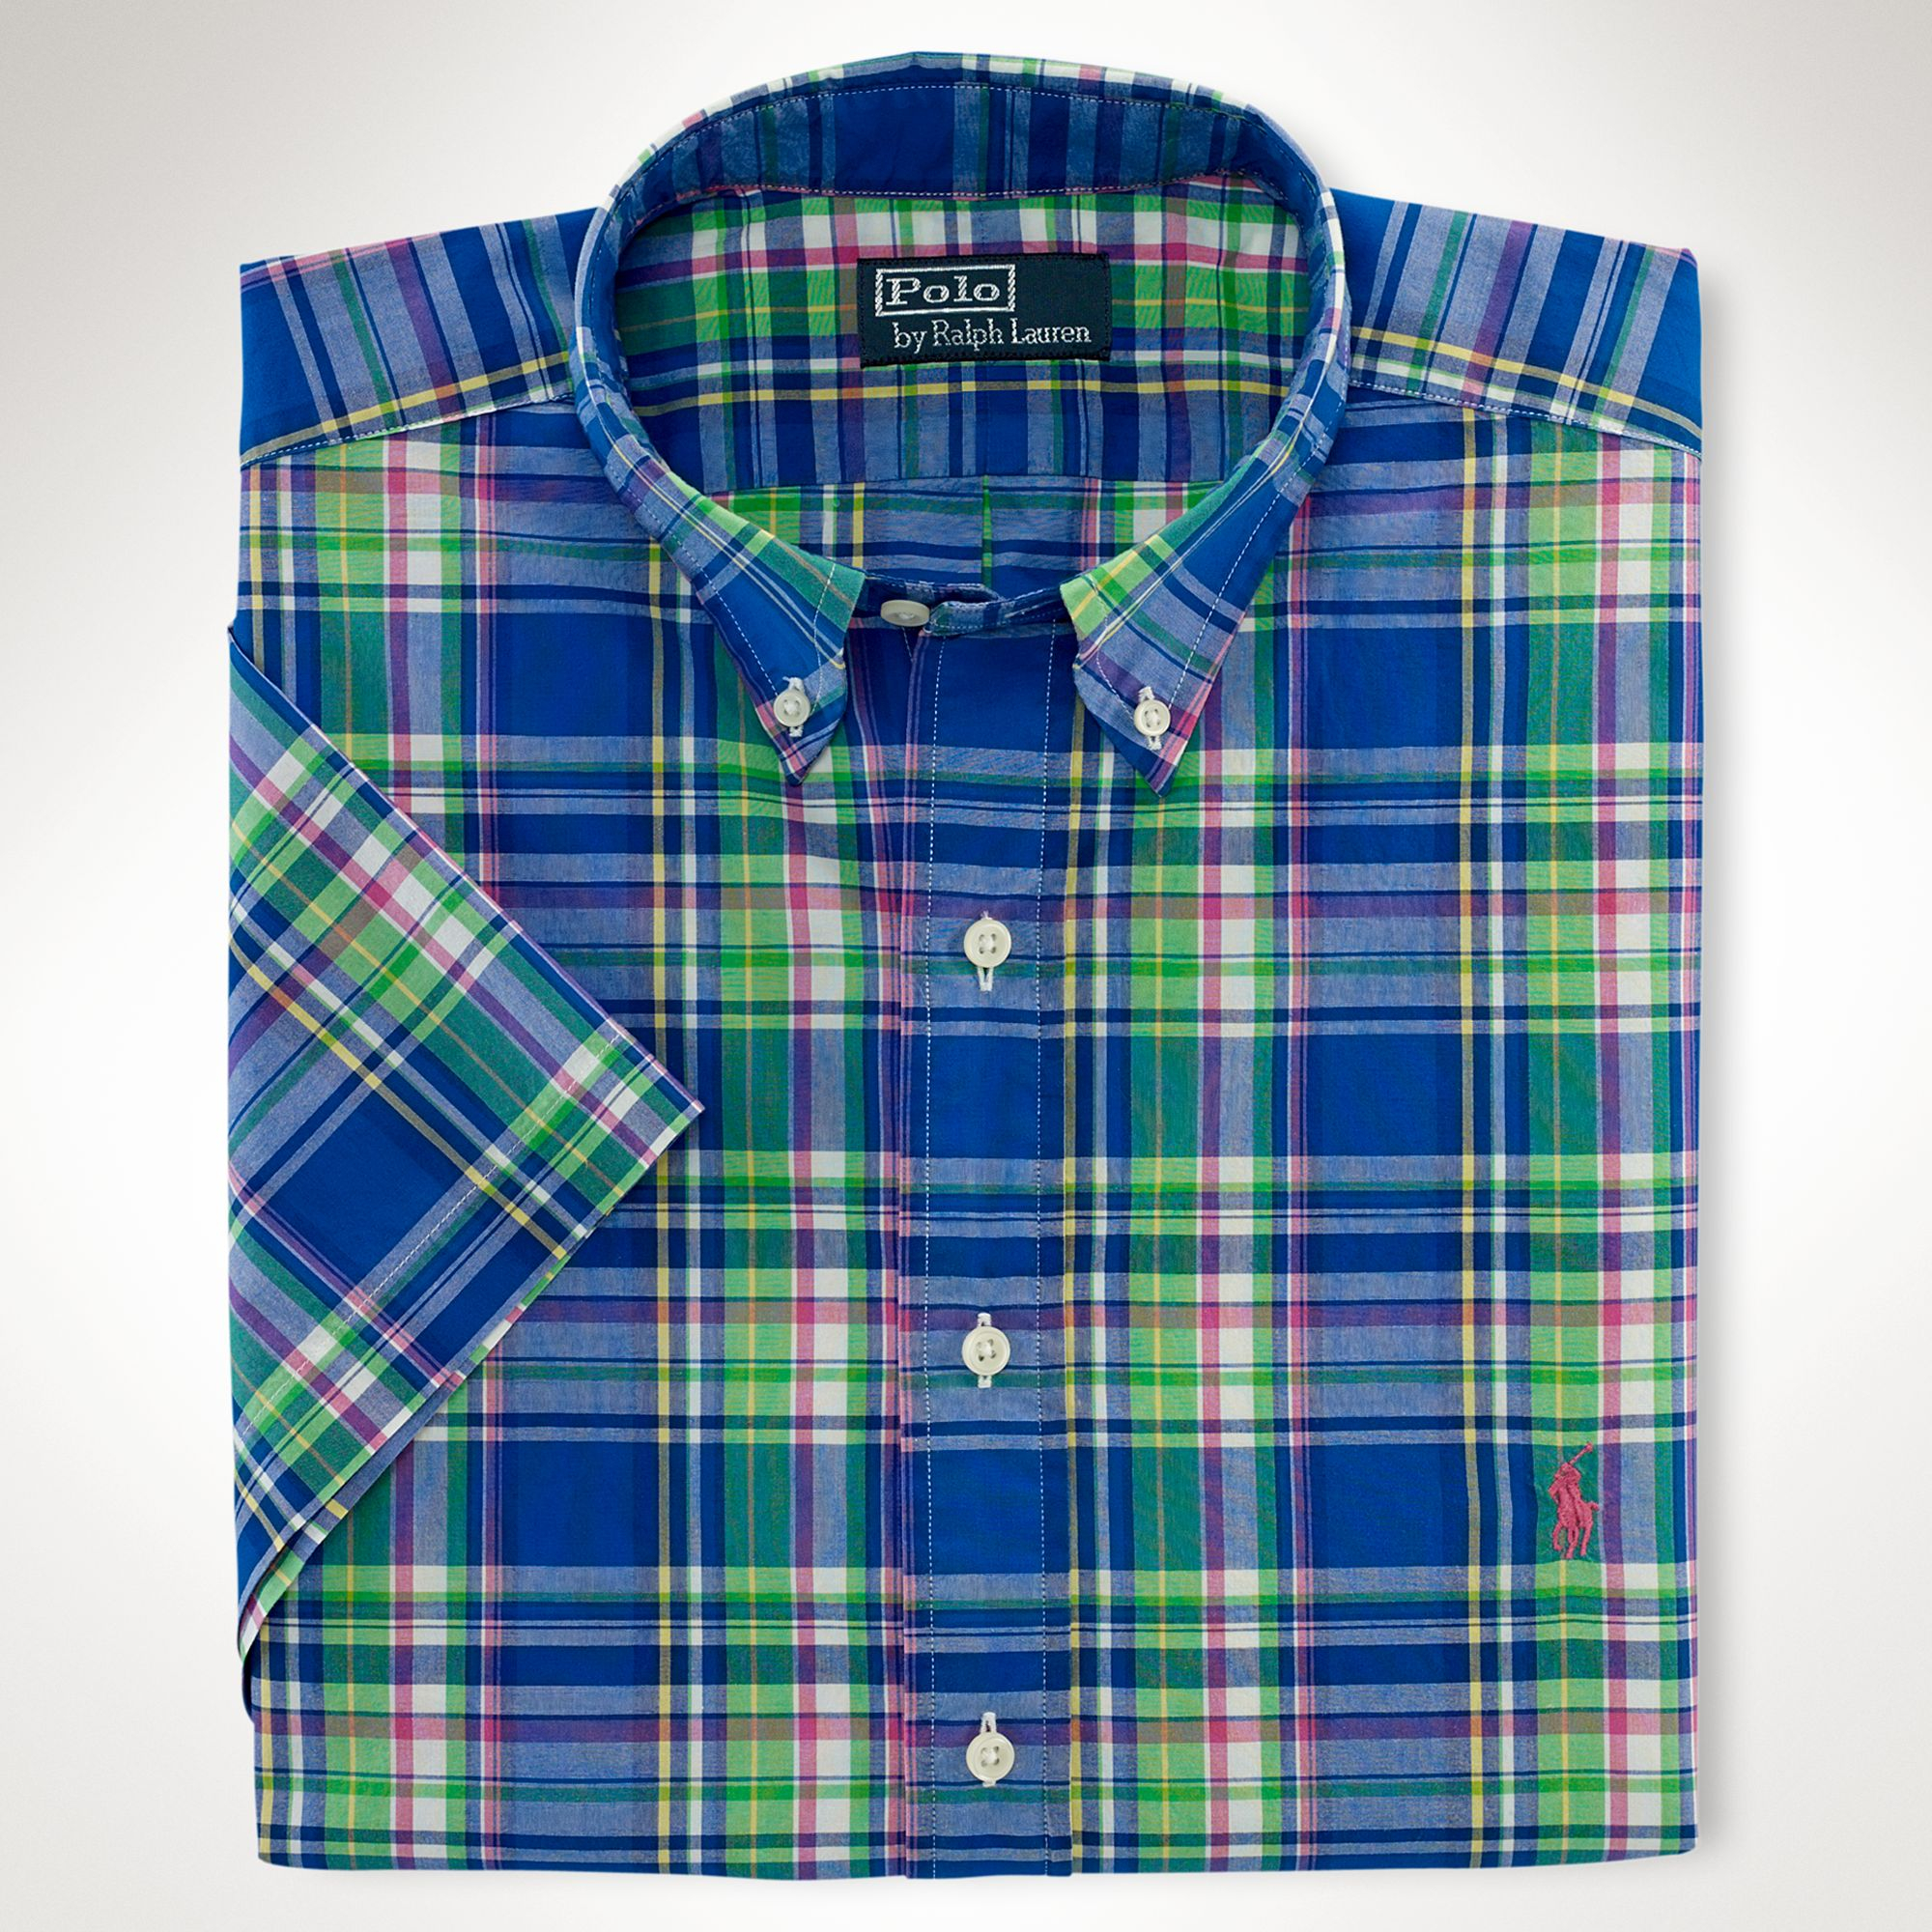 Polo ralph lauren classicfit plaid sport shirt in green Emerald green mens dress shirt